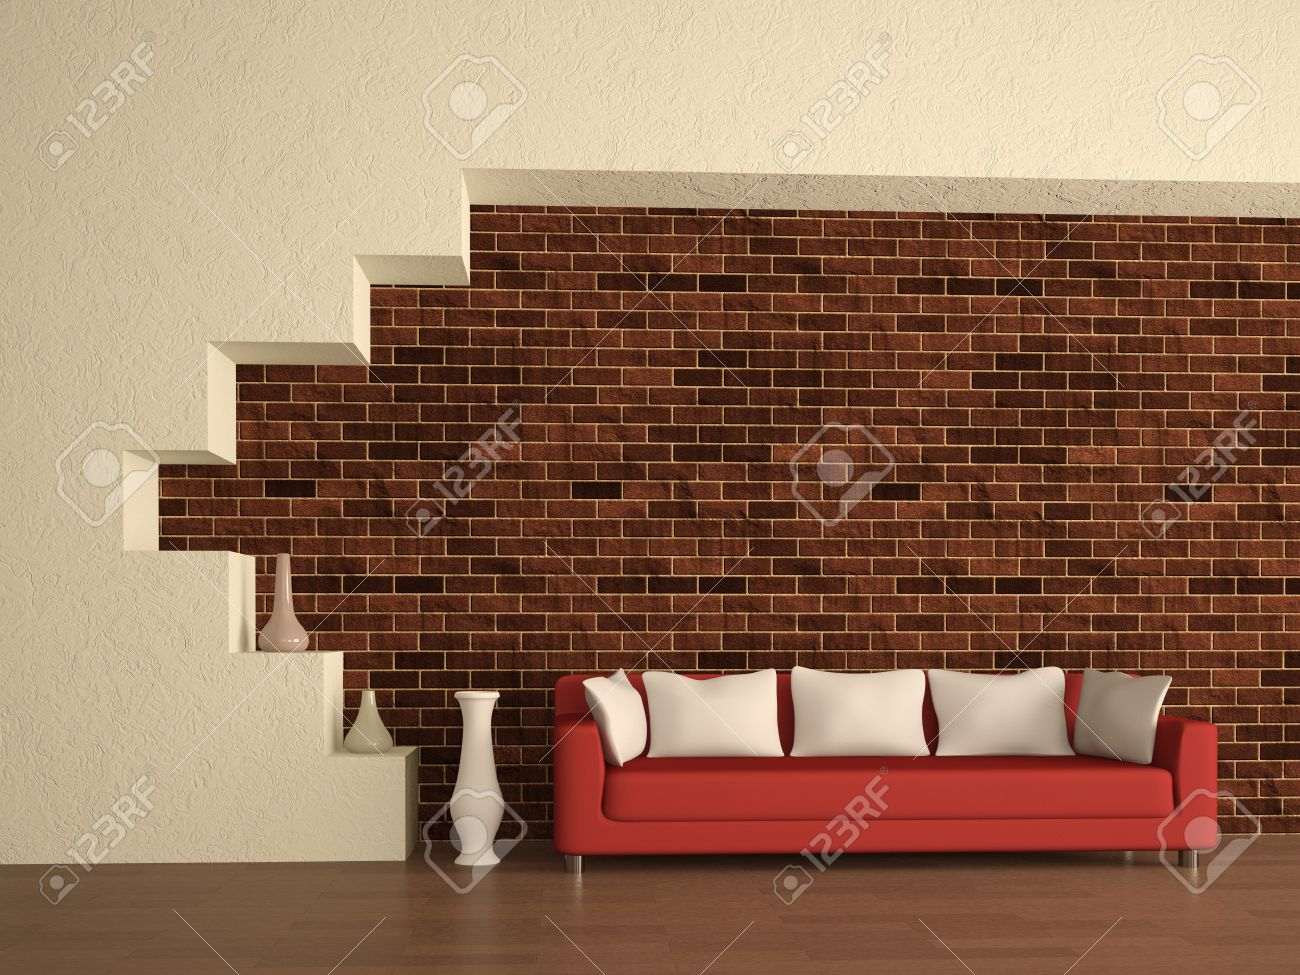 Sofa The Brick Magnificent The Red Sofa Near A Brick Wall Stock Photo Picture And Royalty . Inspiration Design